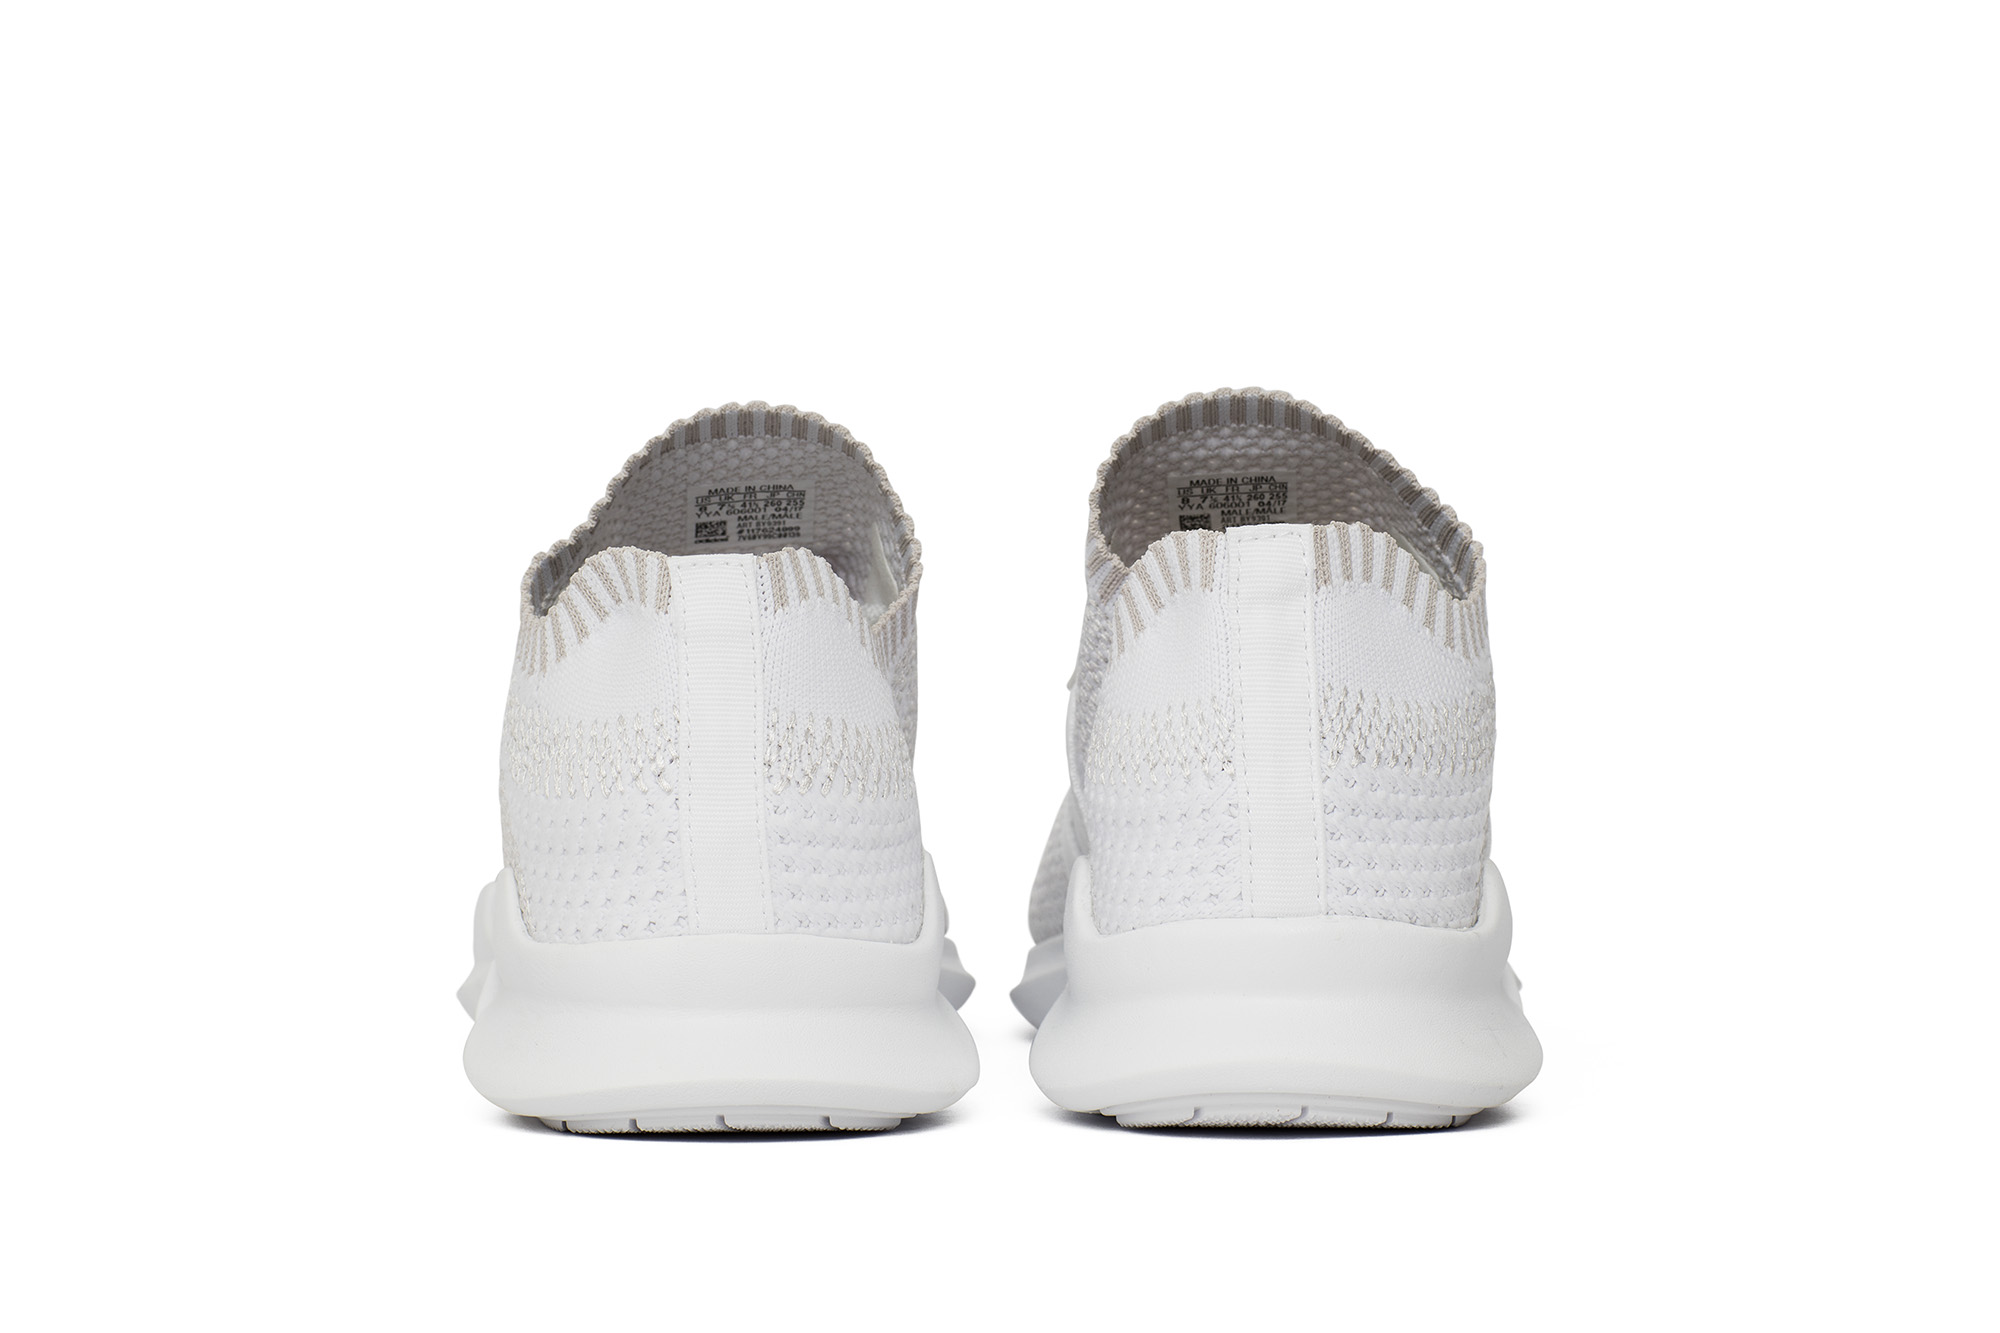 wholesale dealer 29959 f8cf5 Buty męskie adidas EQT Support BY9391 42 23 (7222620157)